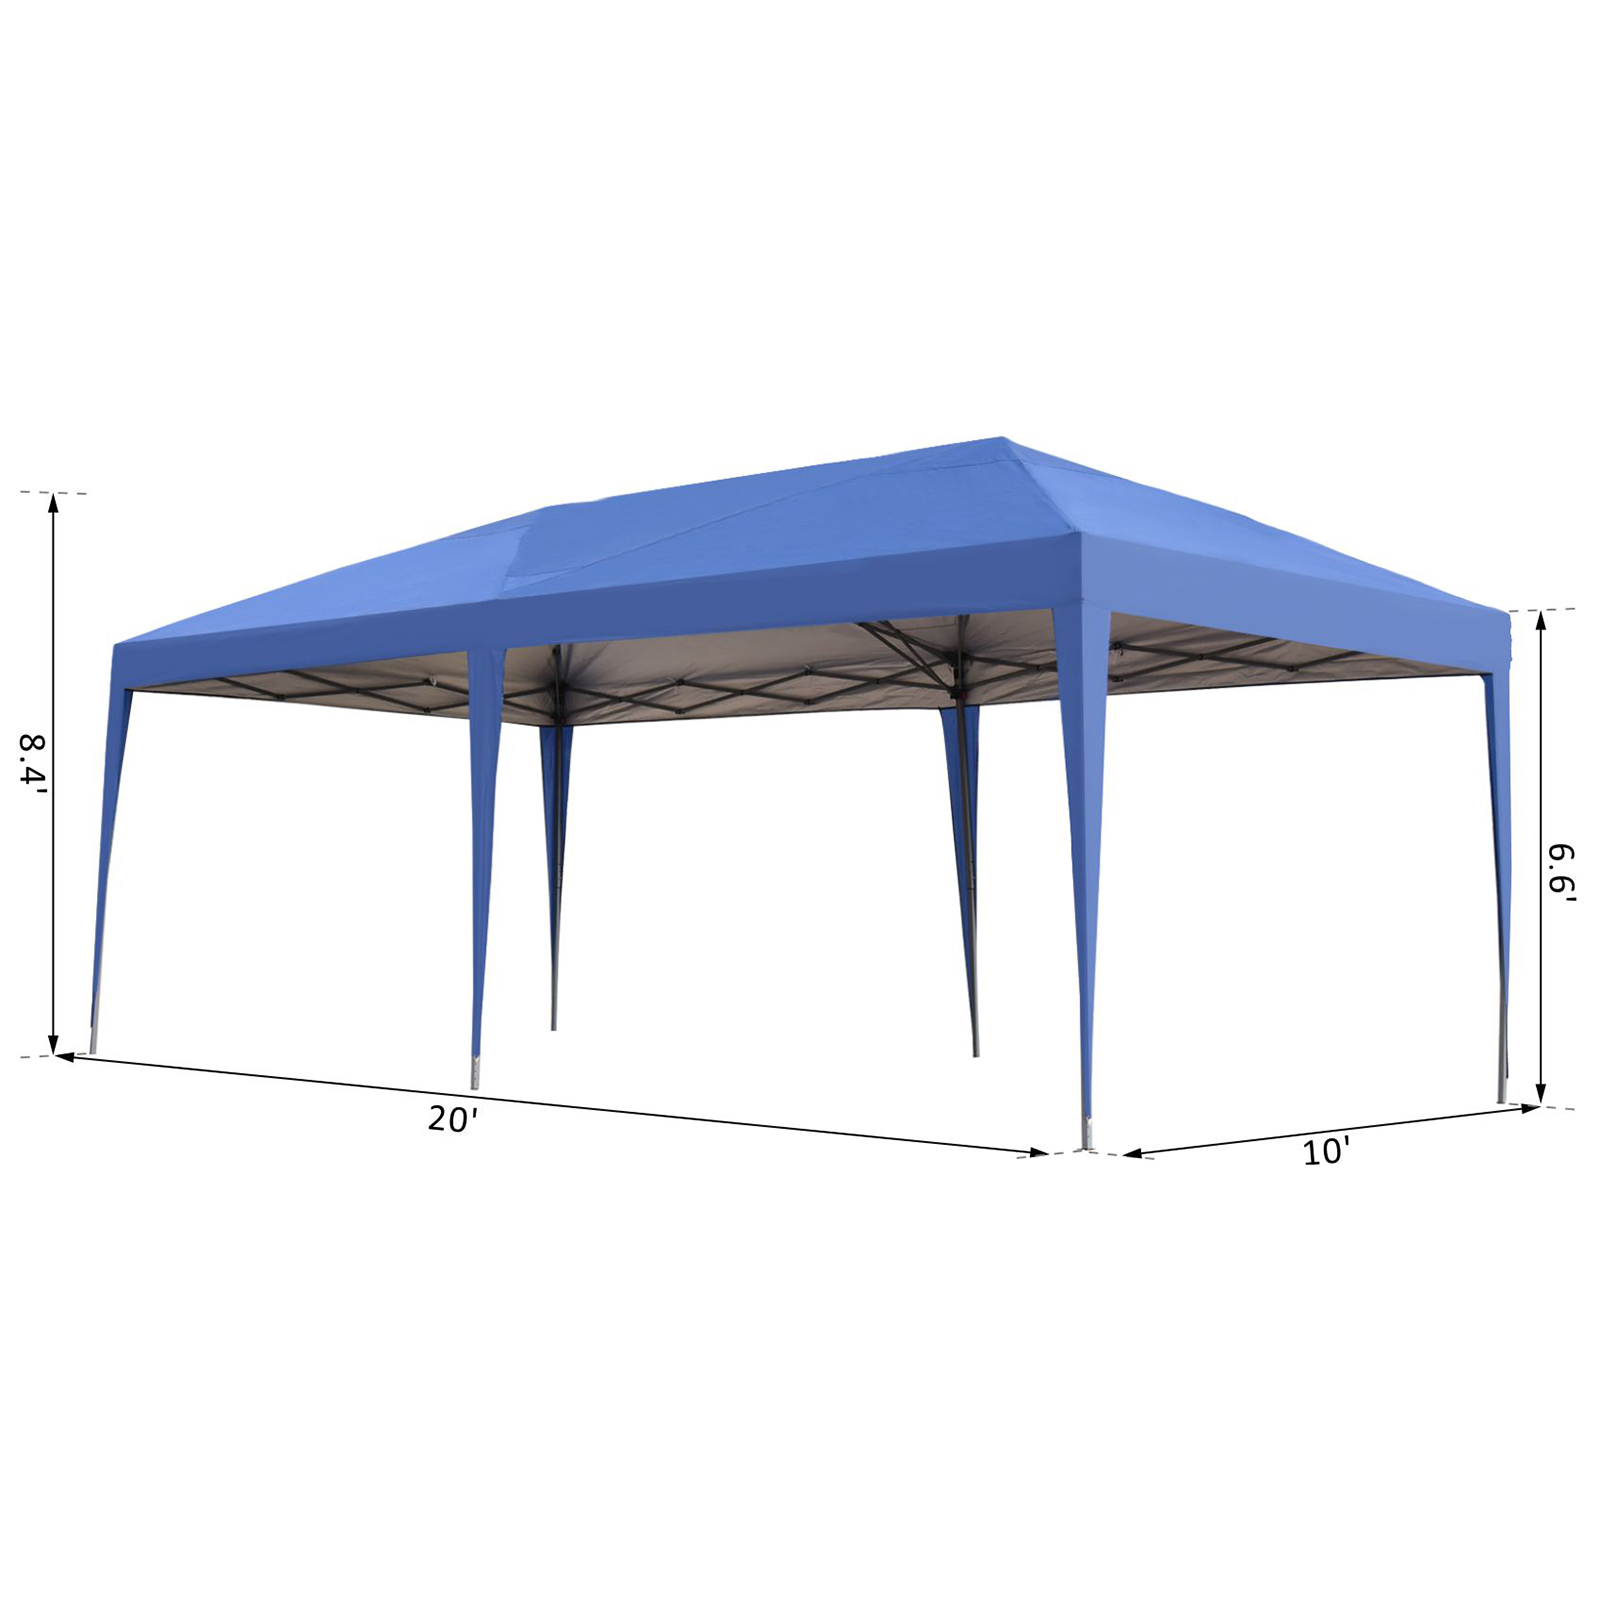 10-x-20-Outdoor-Gazebo-Pop-Up-Canopy-Party-Tent-with-2-Tier-Roof thumbnail 3